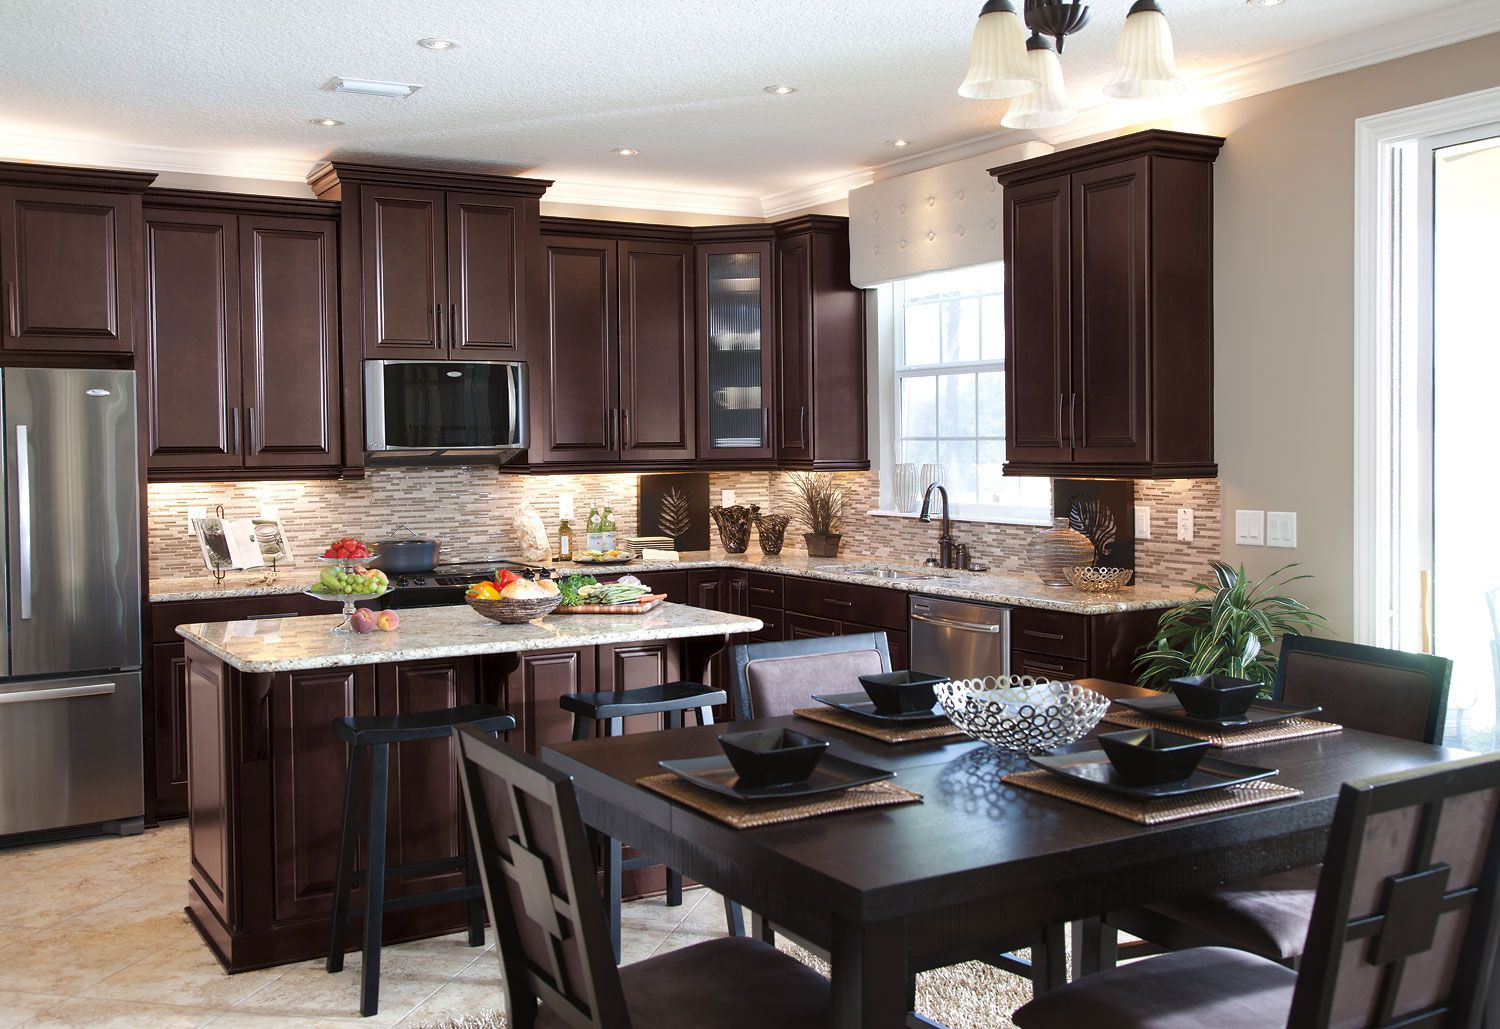 Timberlake Cabinets With Light Rail Lighting And Crown Molding Accent Interio Dark Brown Kitchen Cabinets Brown Kitchen Cabinets Cherry Wood Kitchen Cabinets